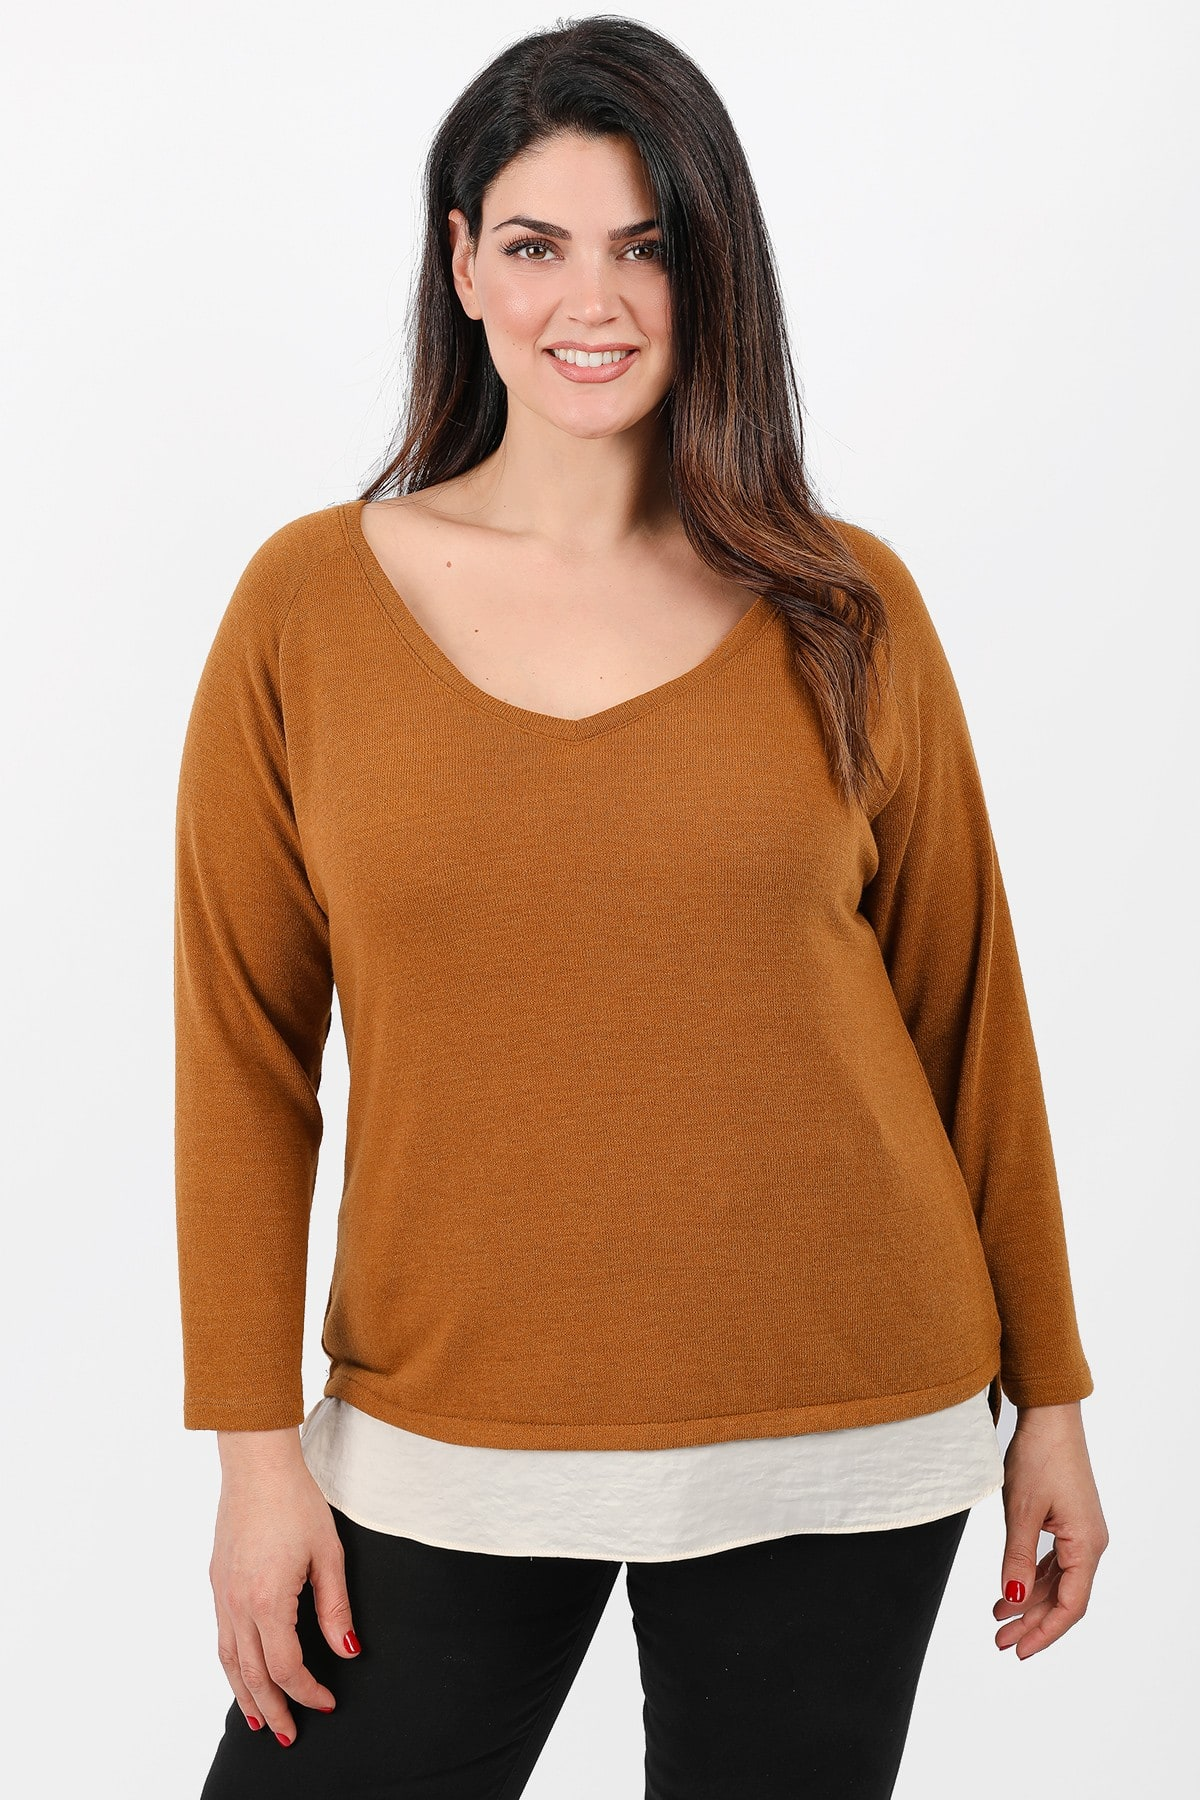 Knit blouse with sateen hem